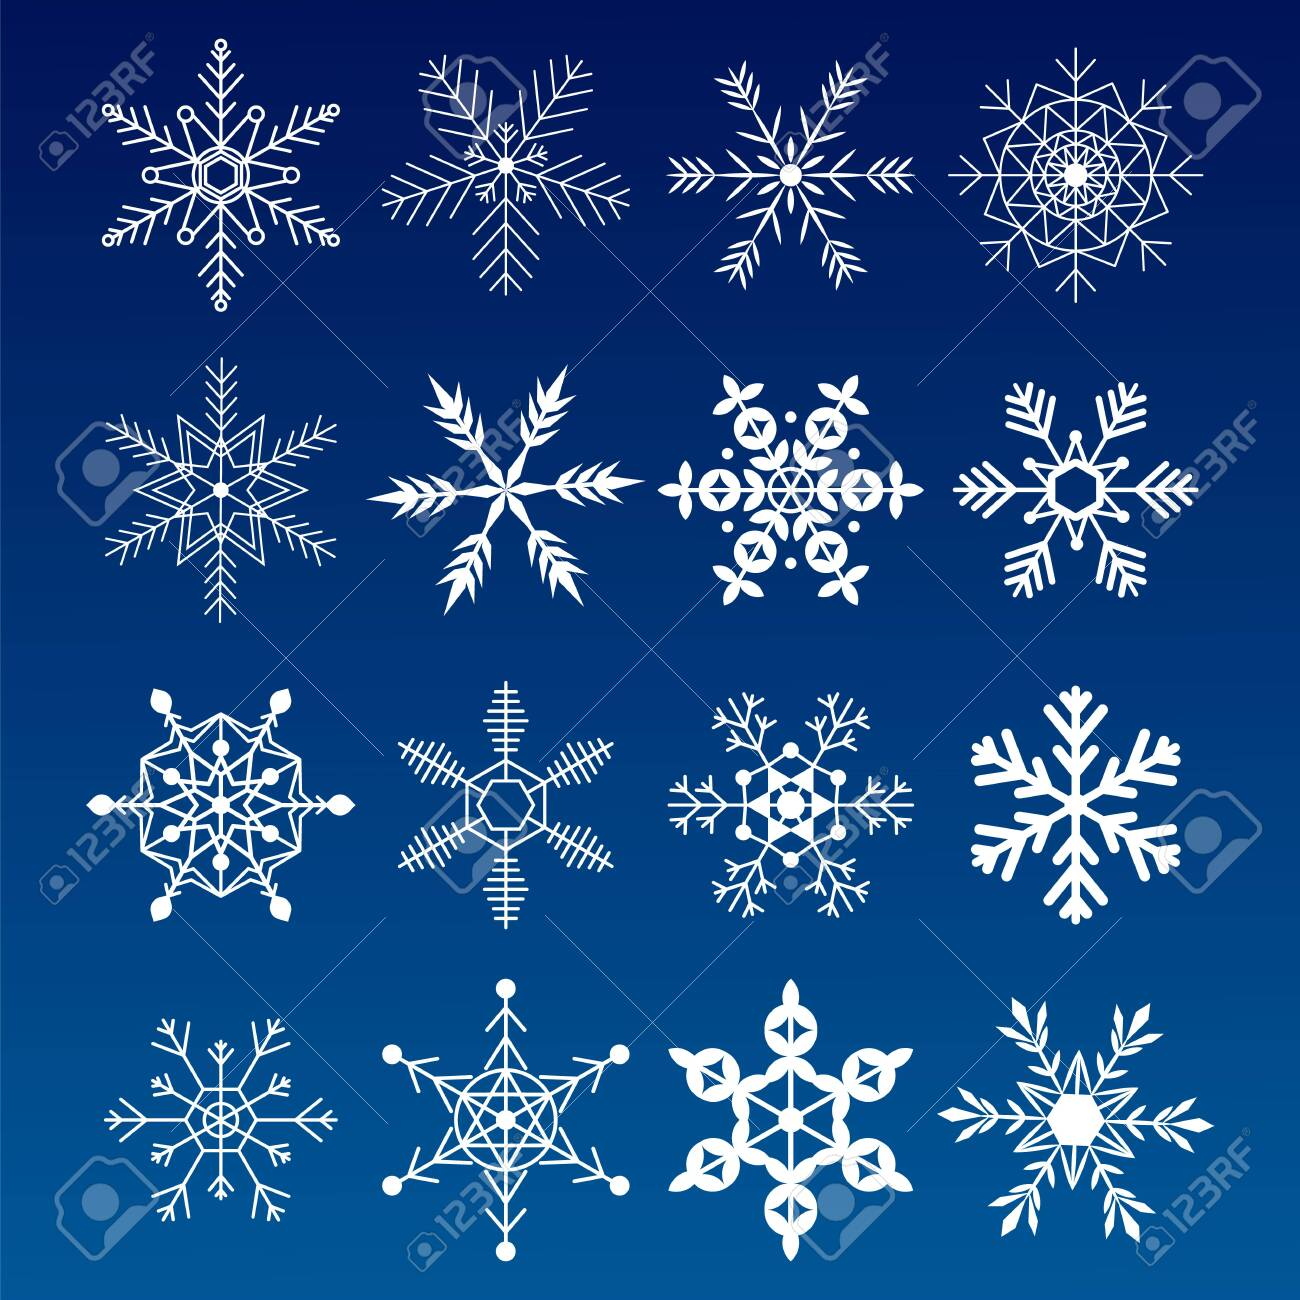 Collection snowflakes. Flat snow icons, silhouette. Nice element for Christmas banner, cards. New year ornament. - 131056276